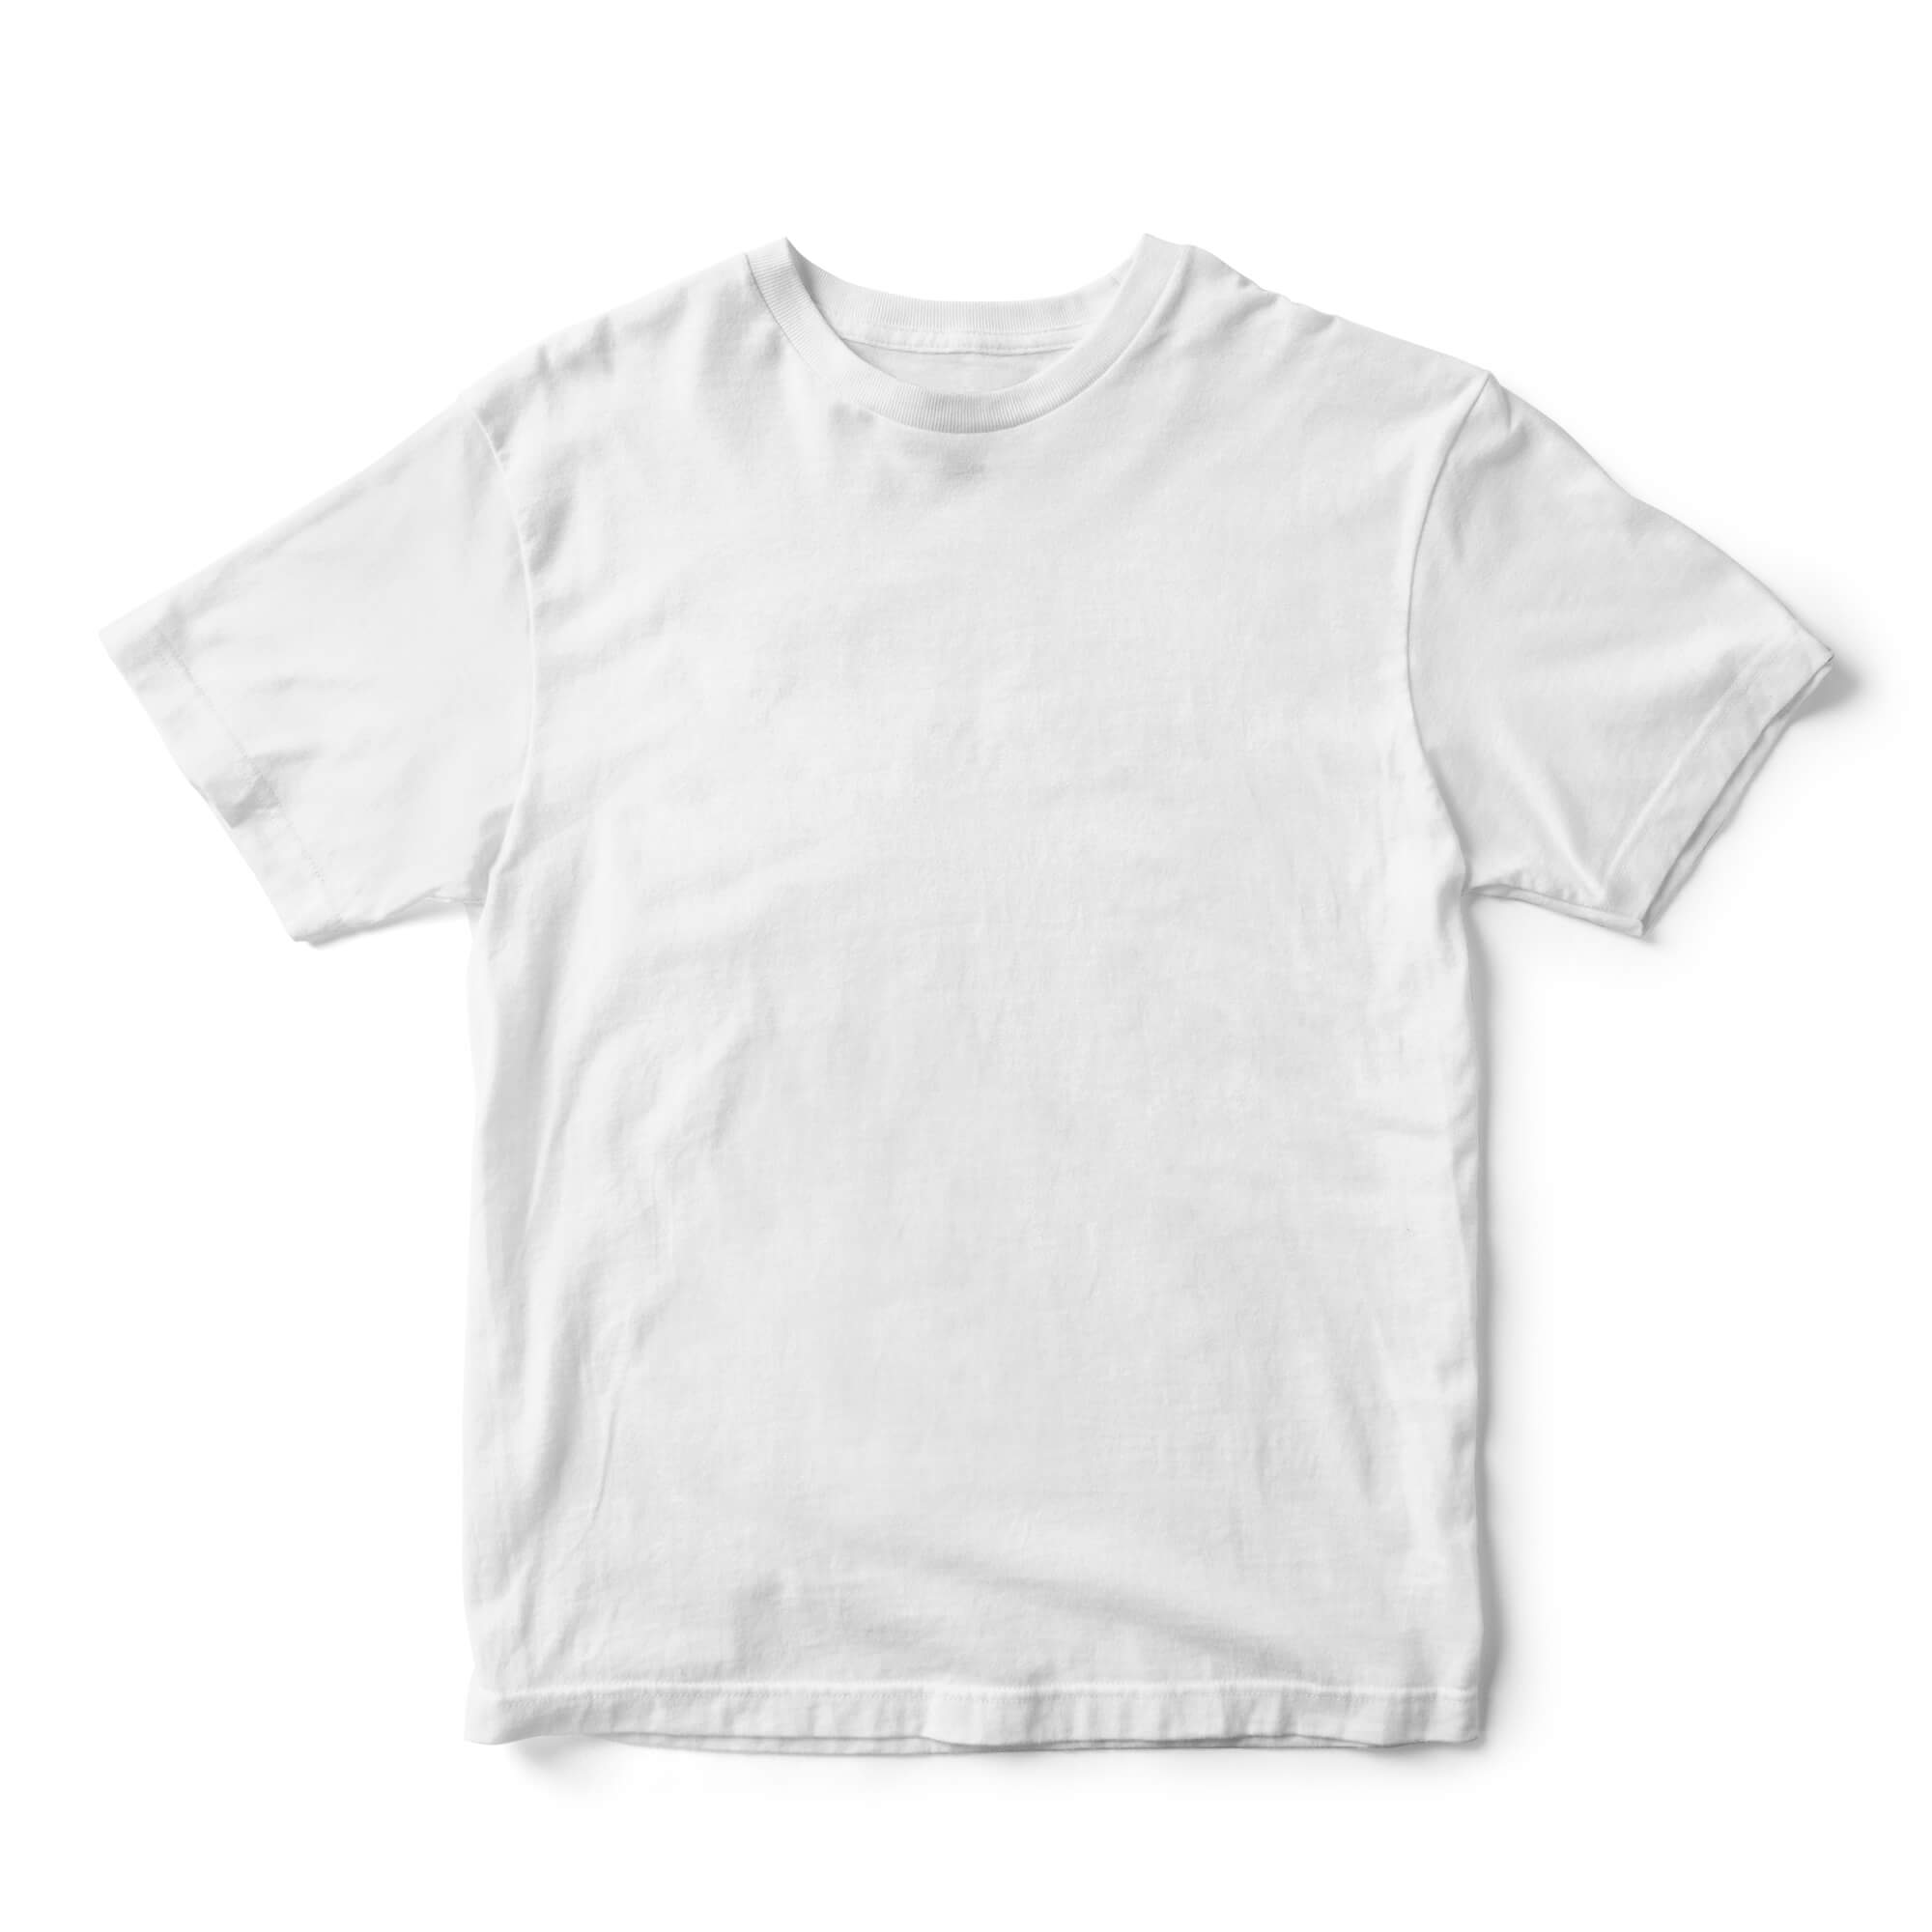 Blank Free Baby T Shirt Mockup PSD Template